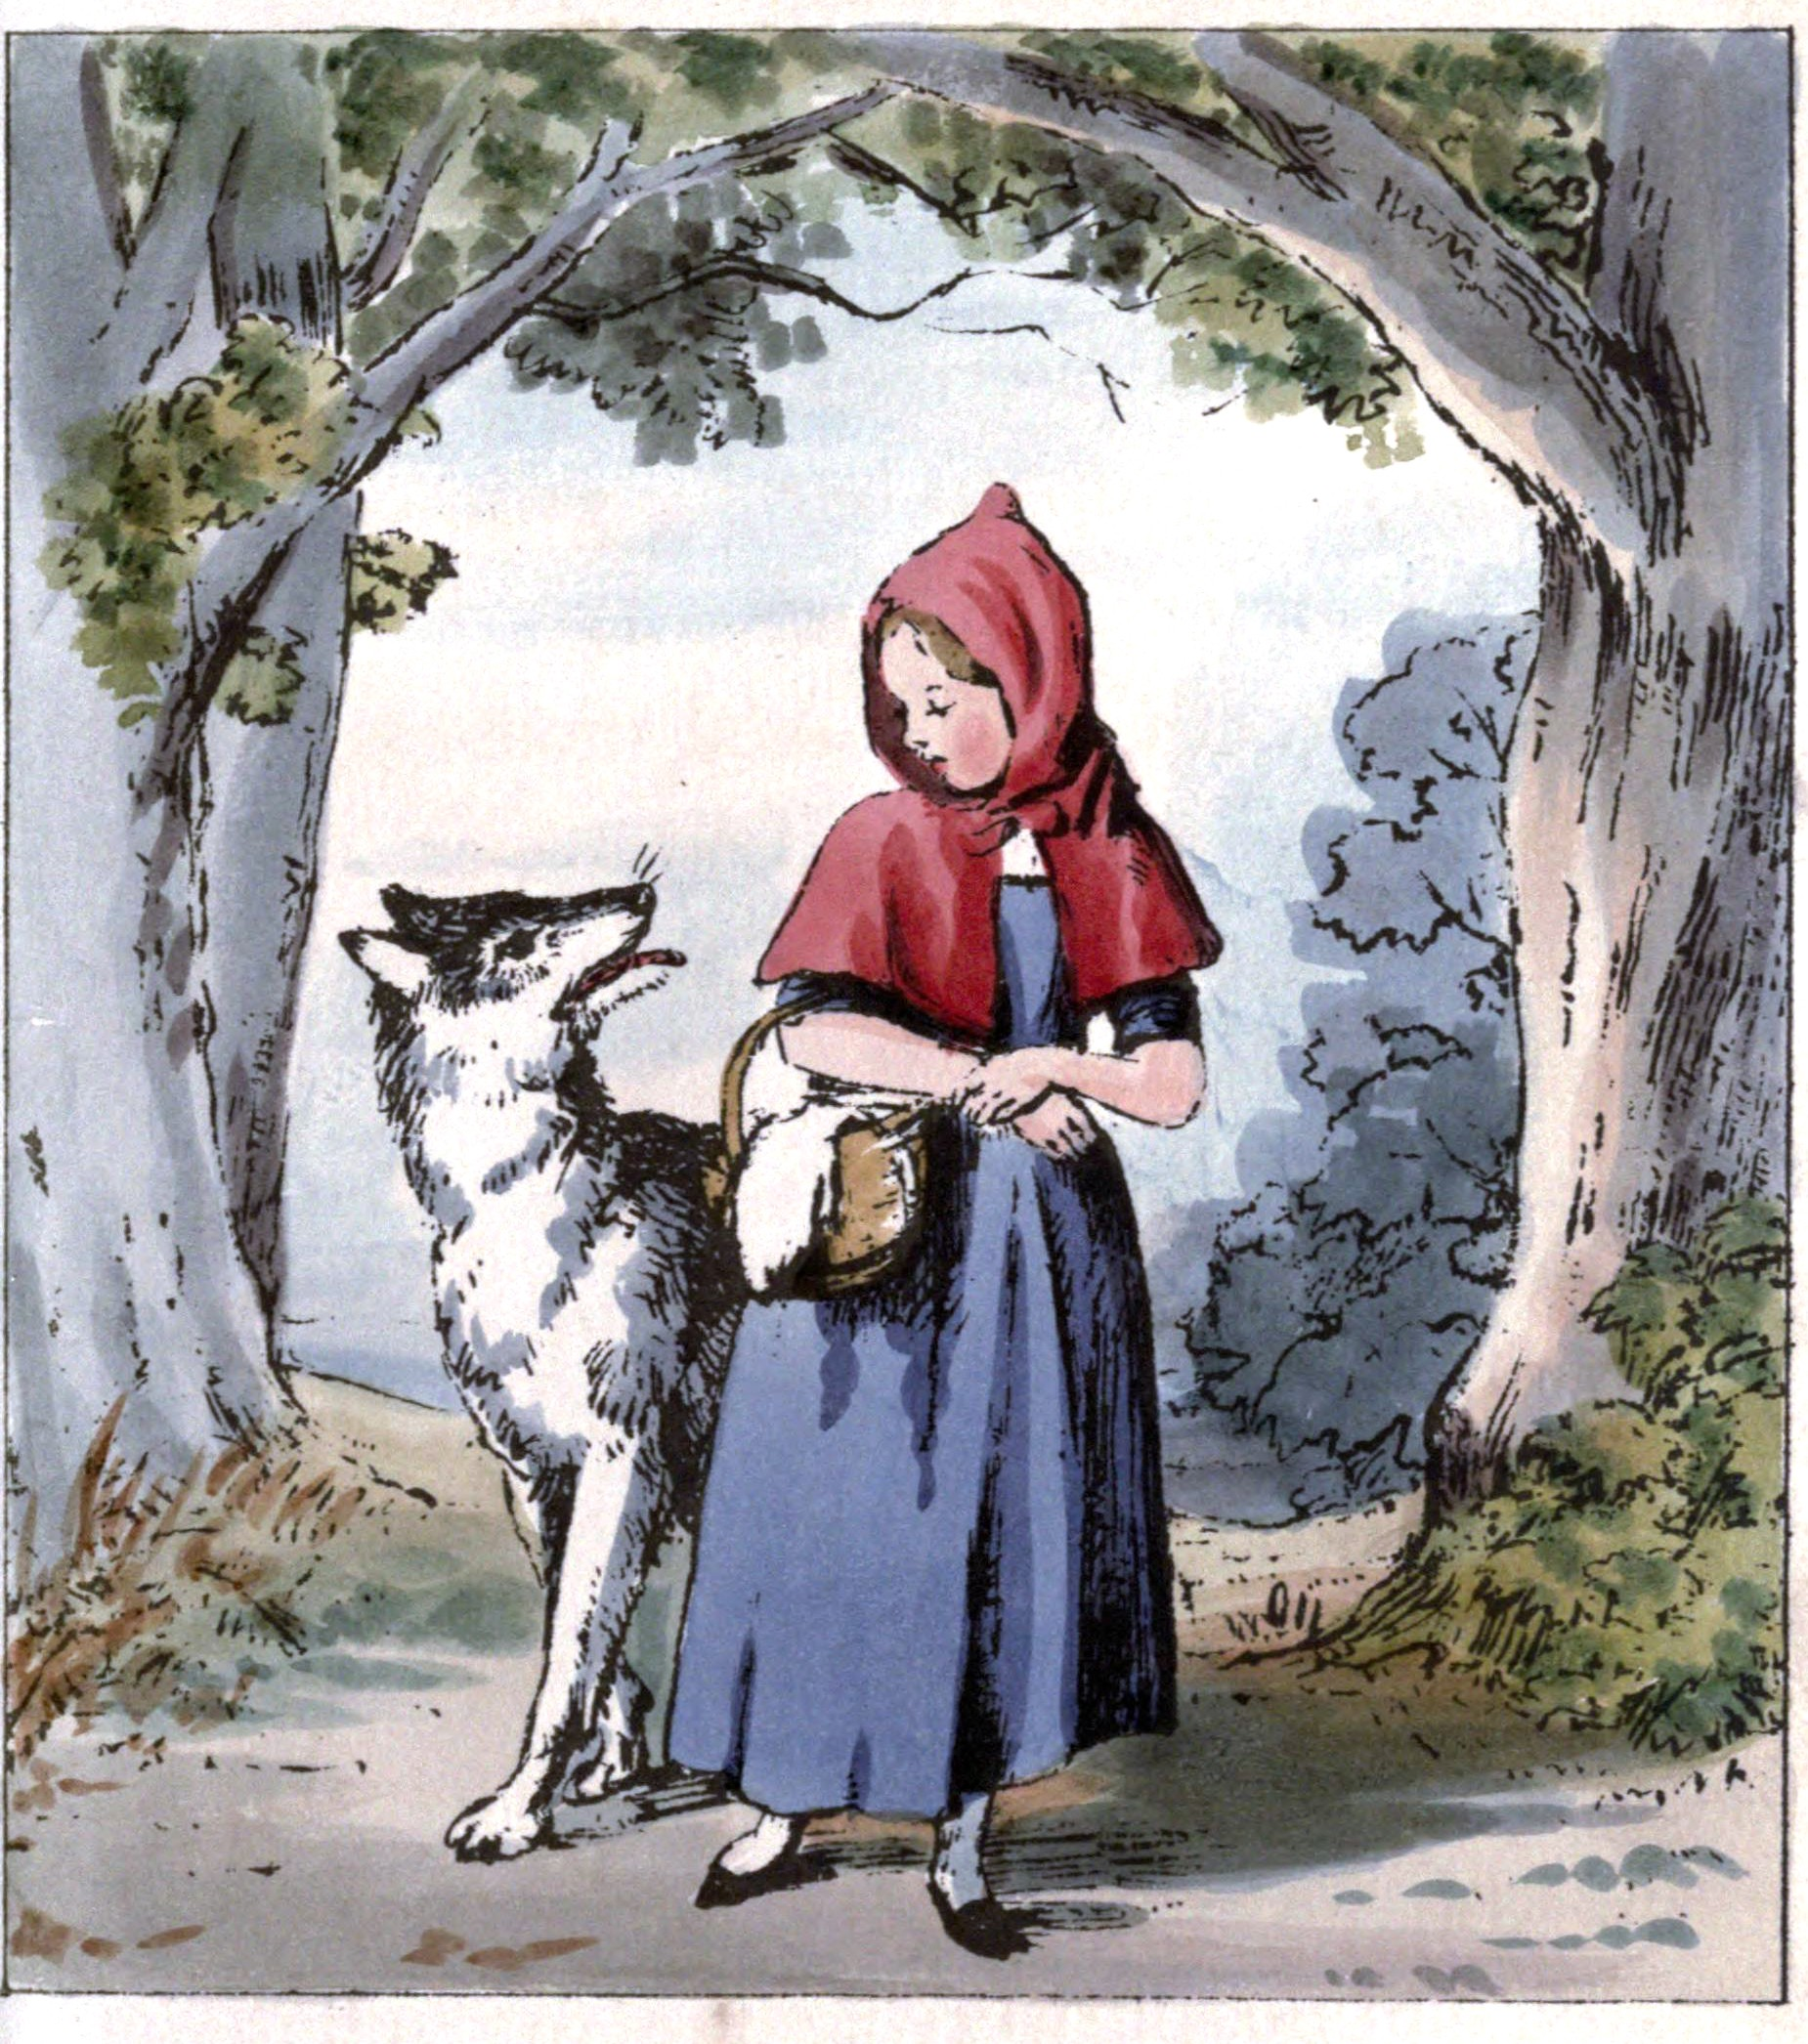 Think, naked lil red riding hood the